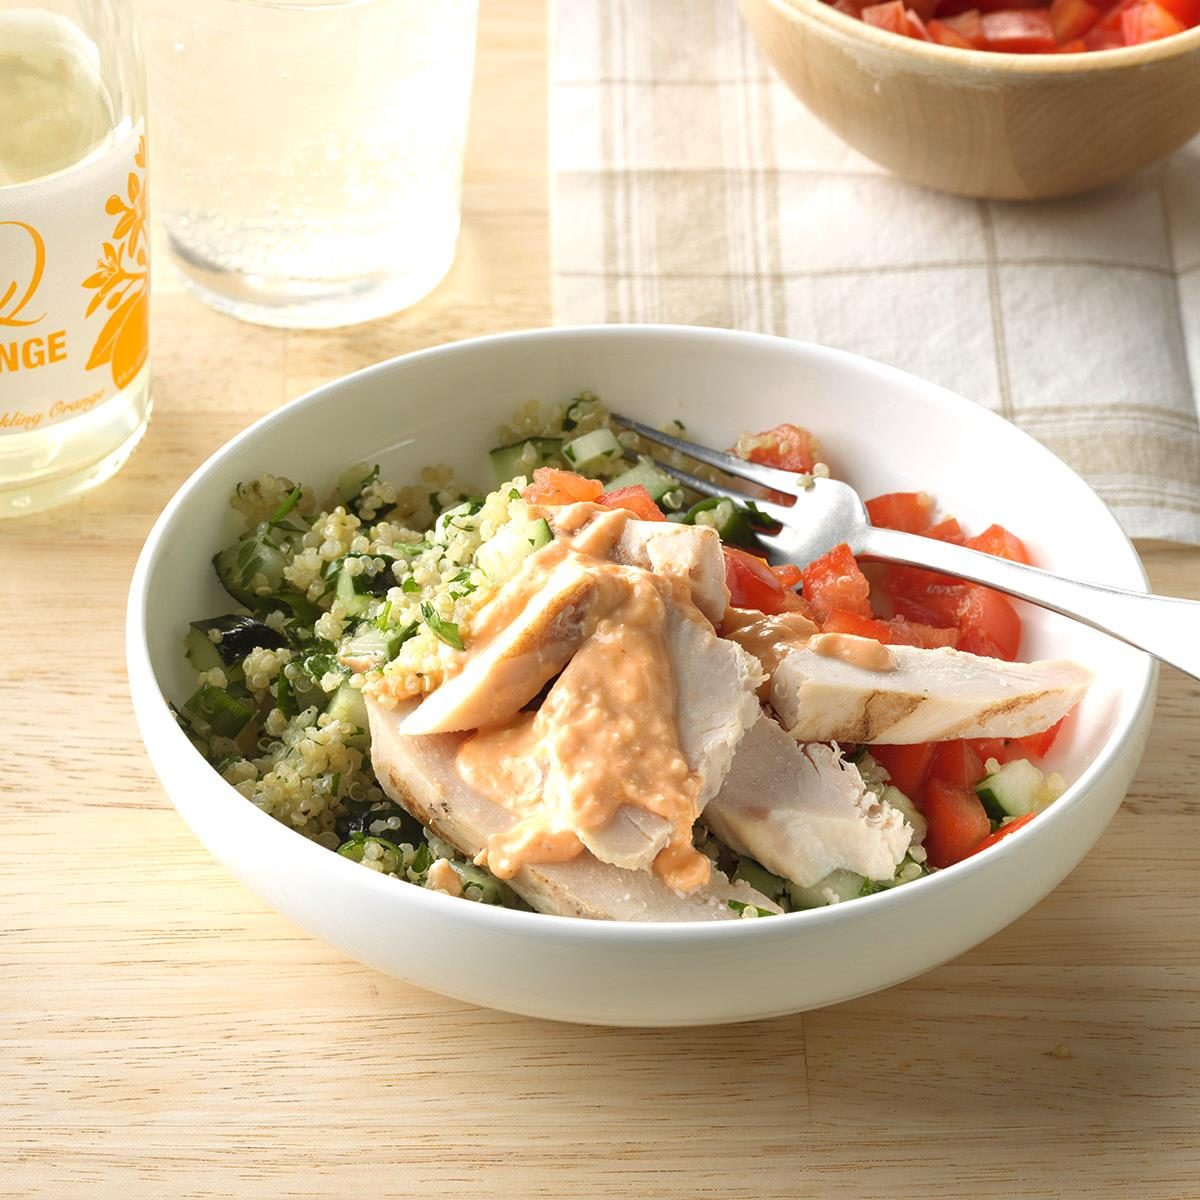 Thursday: Chicken Quinoa Salad